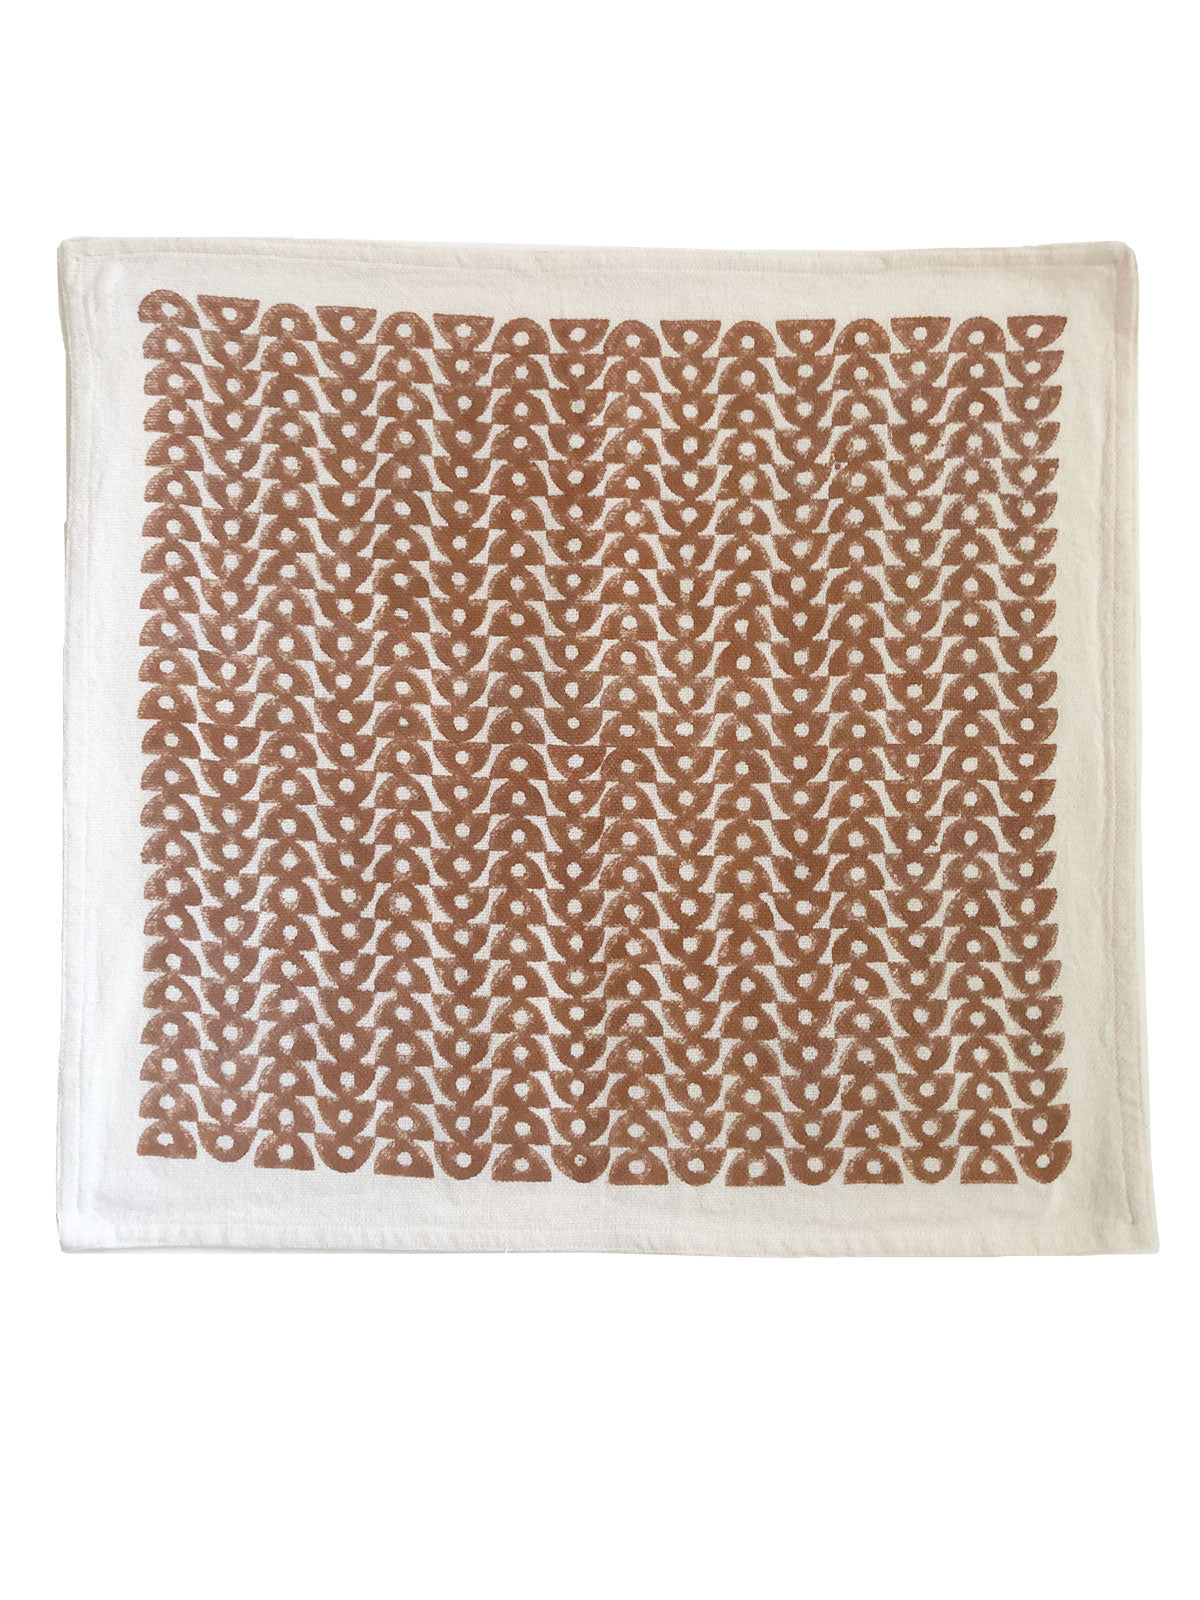 Hand block printed cloth table napkin by SUNDAY/MONDAY in an elegant half moon design. The warm chestnut brown pairs with most tables and linens.